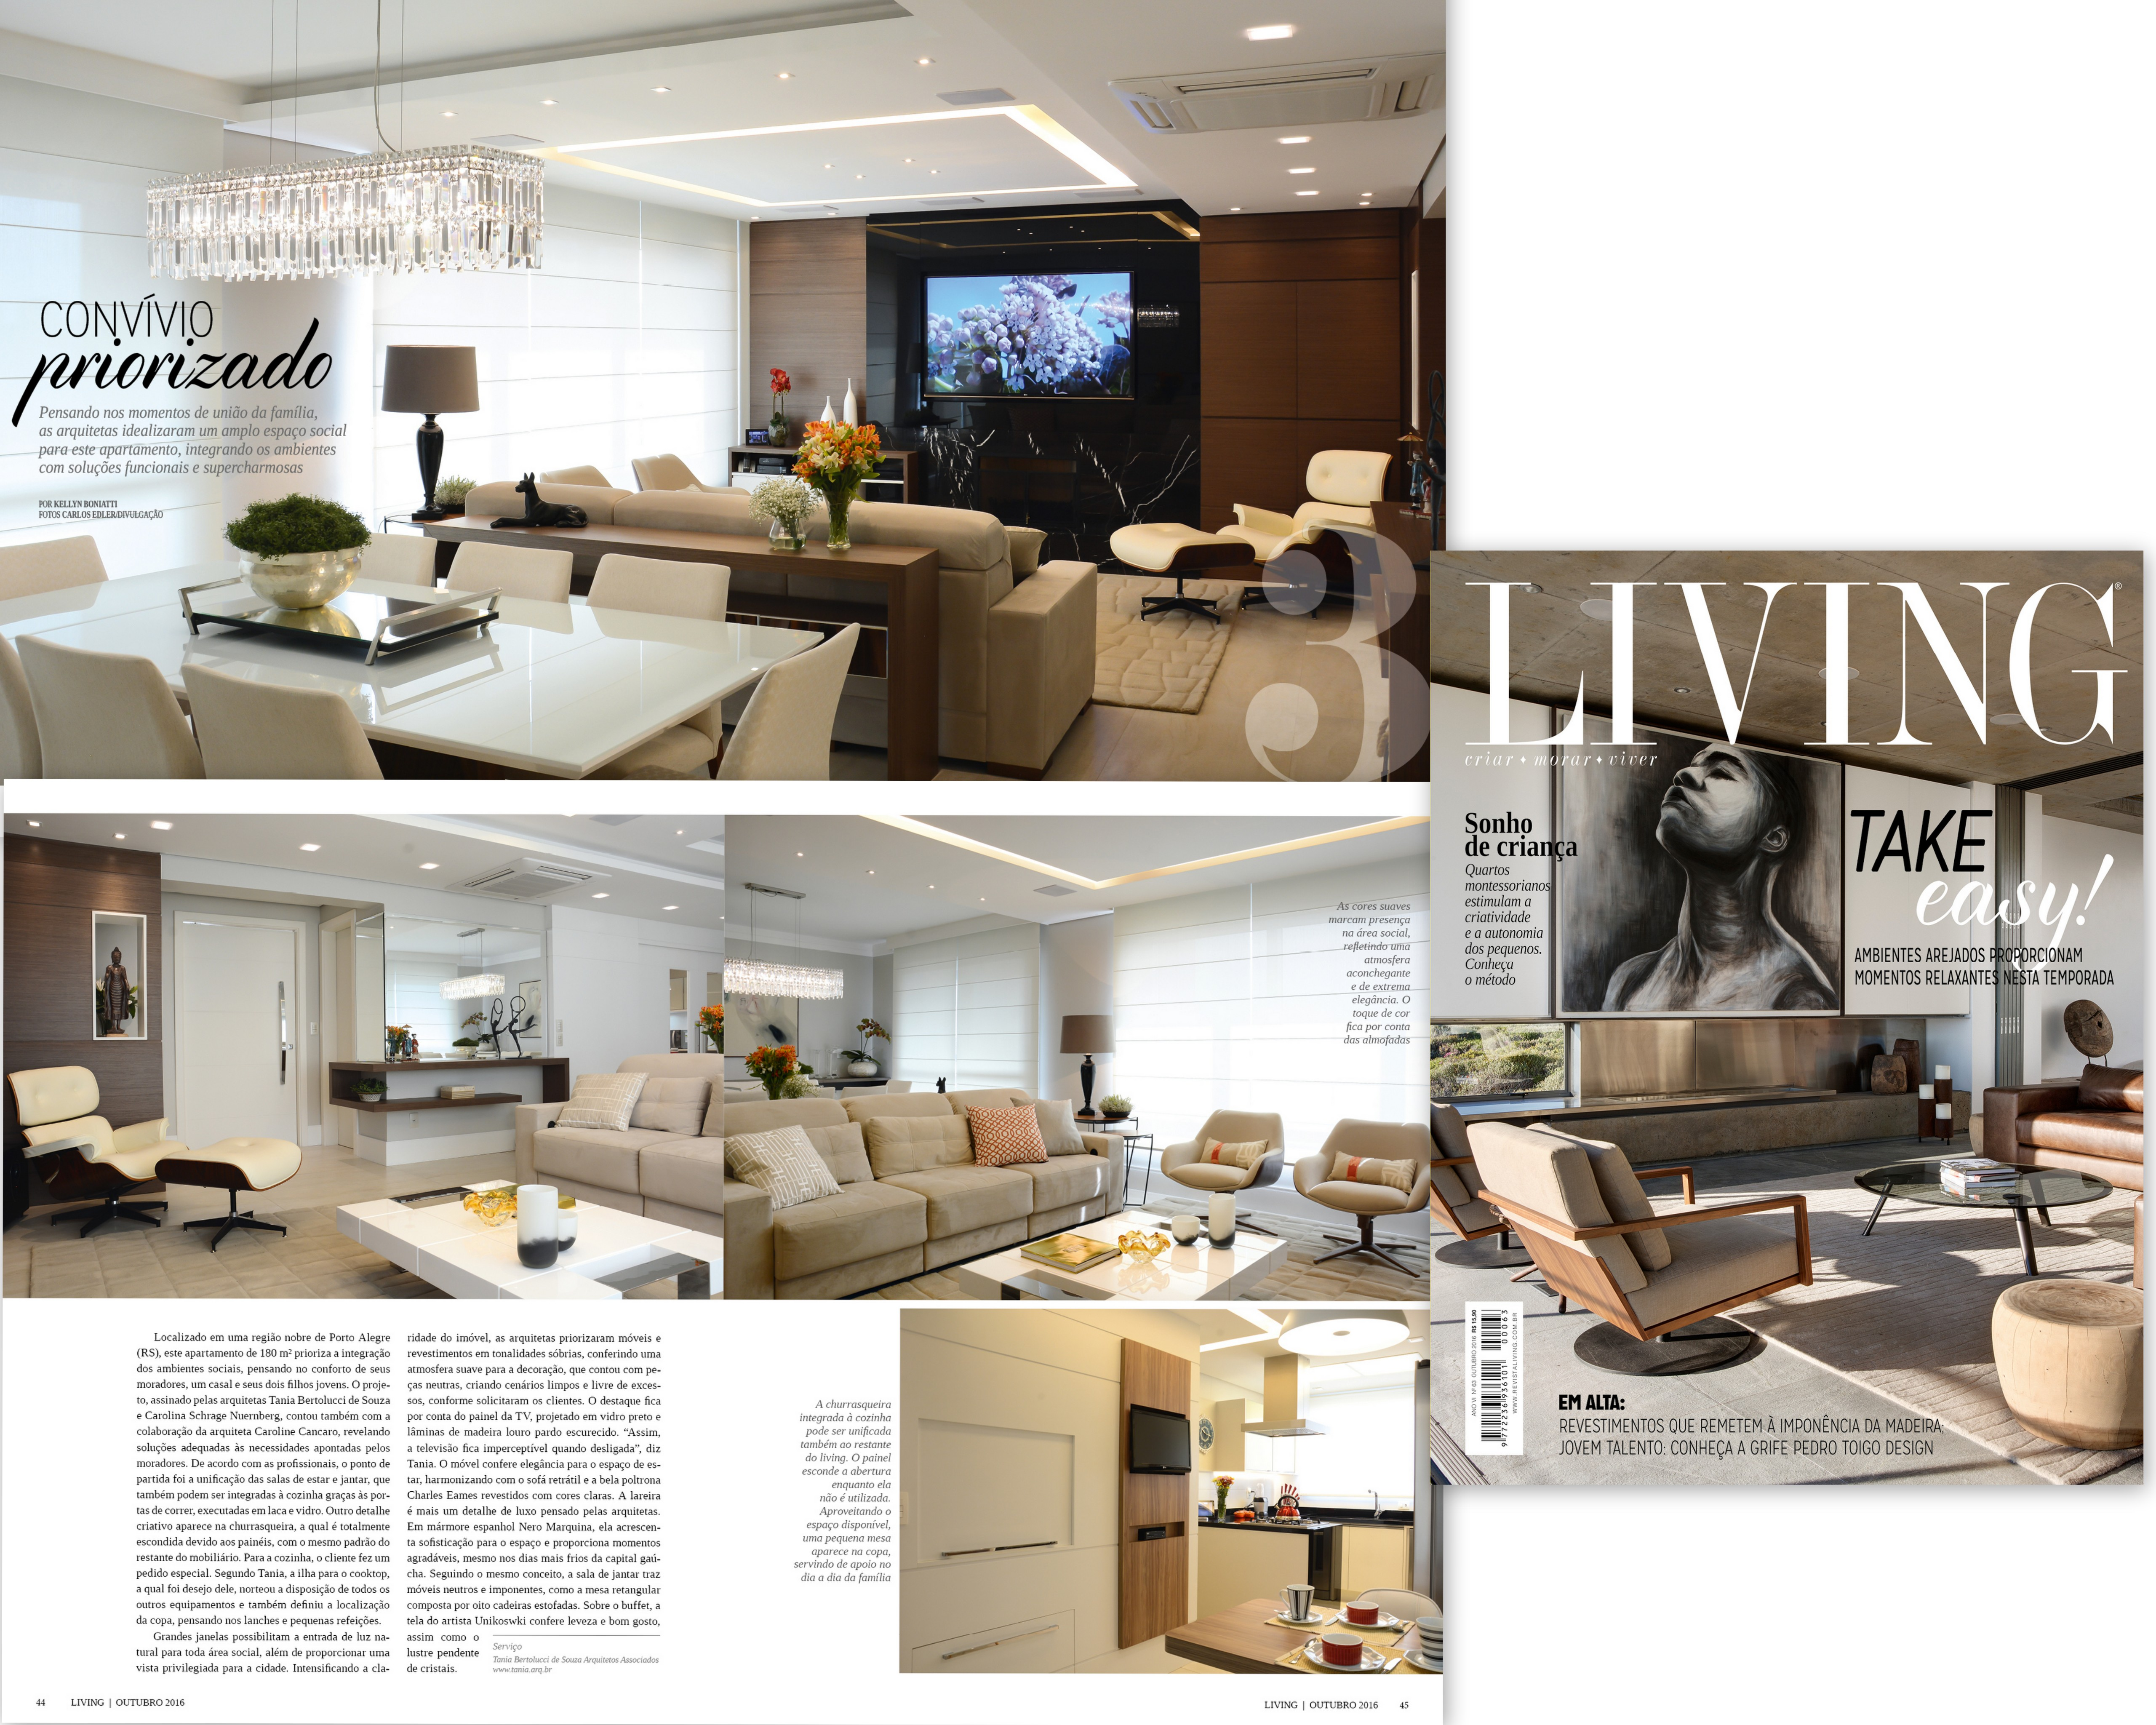 tania-bertolucci-revistaliving-out